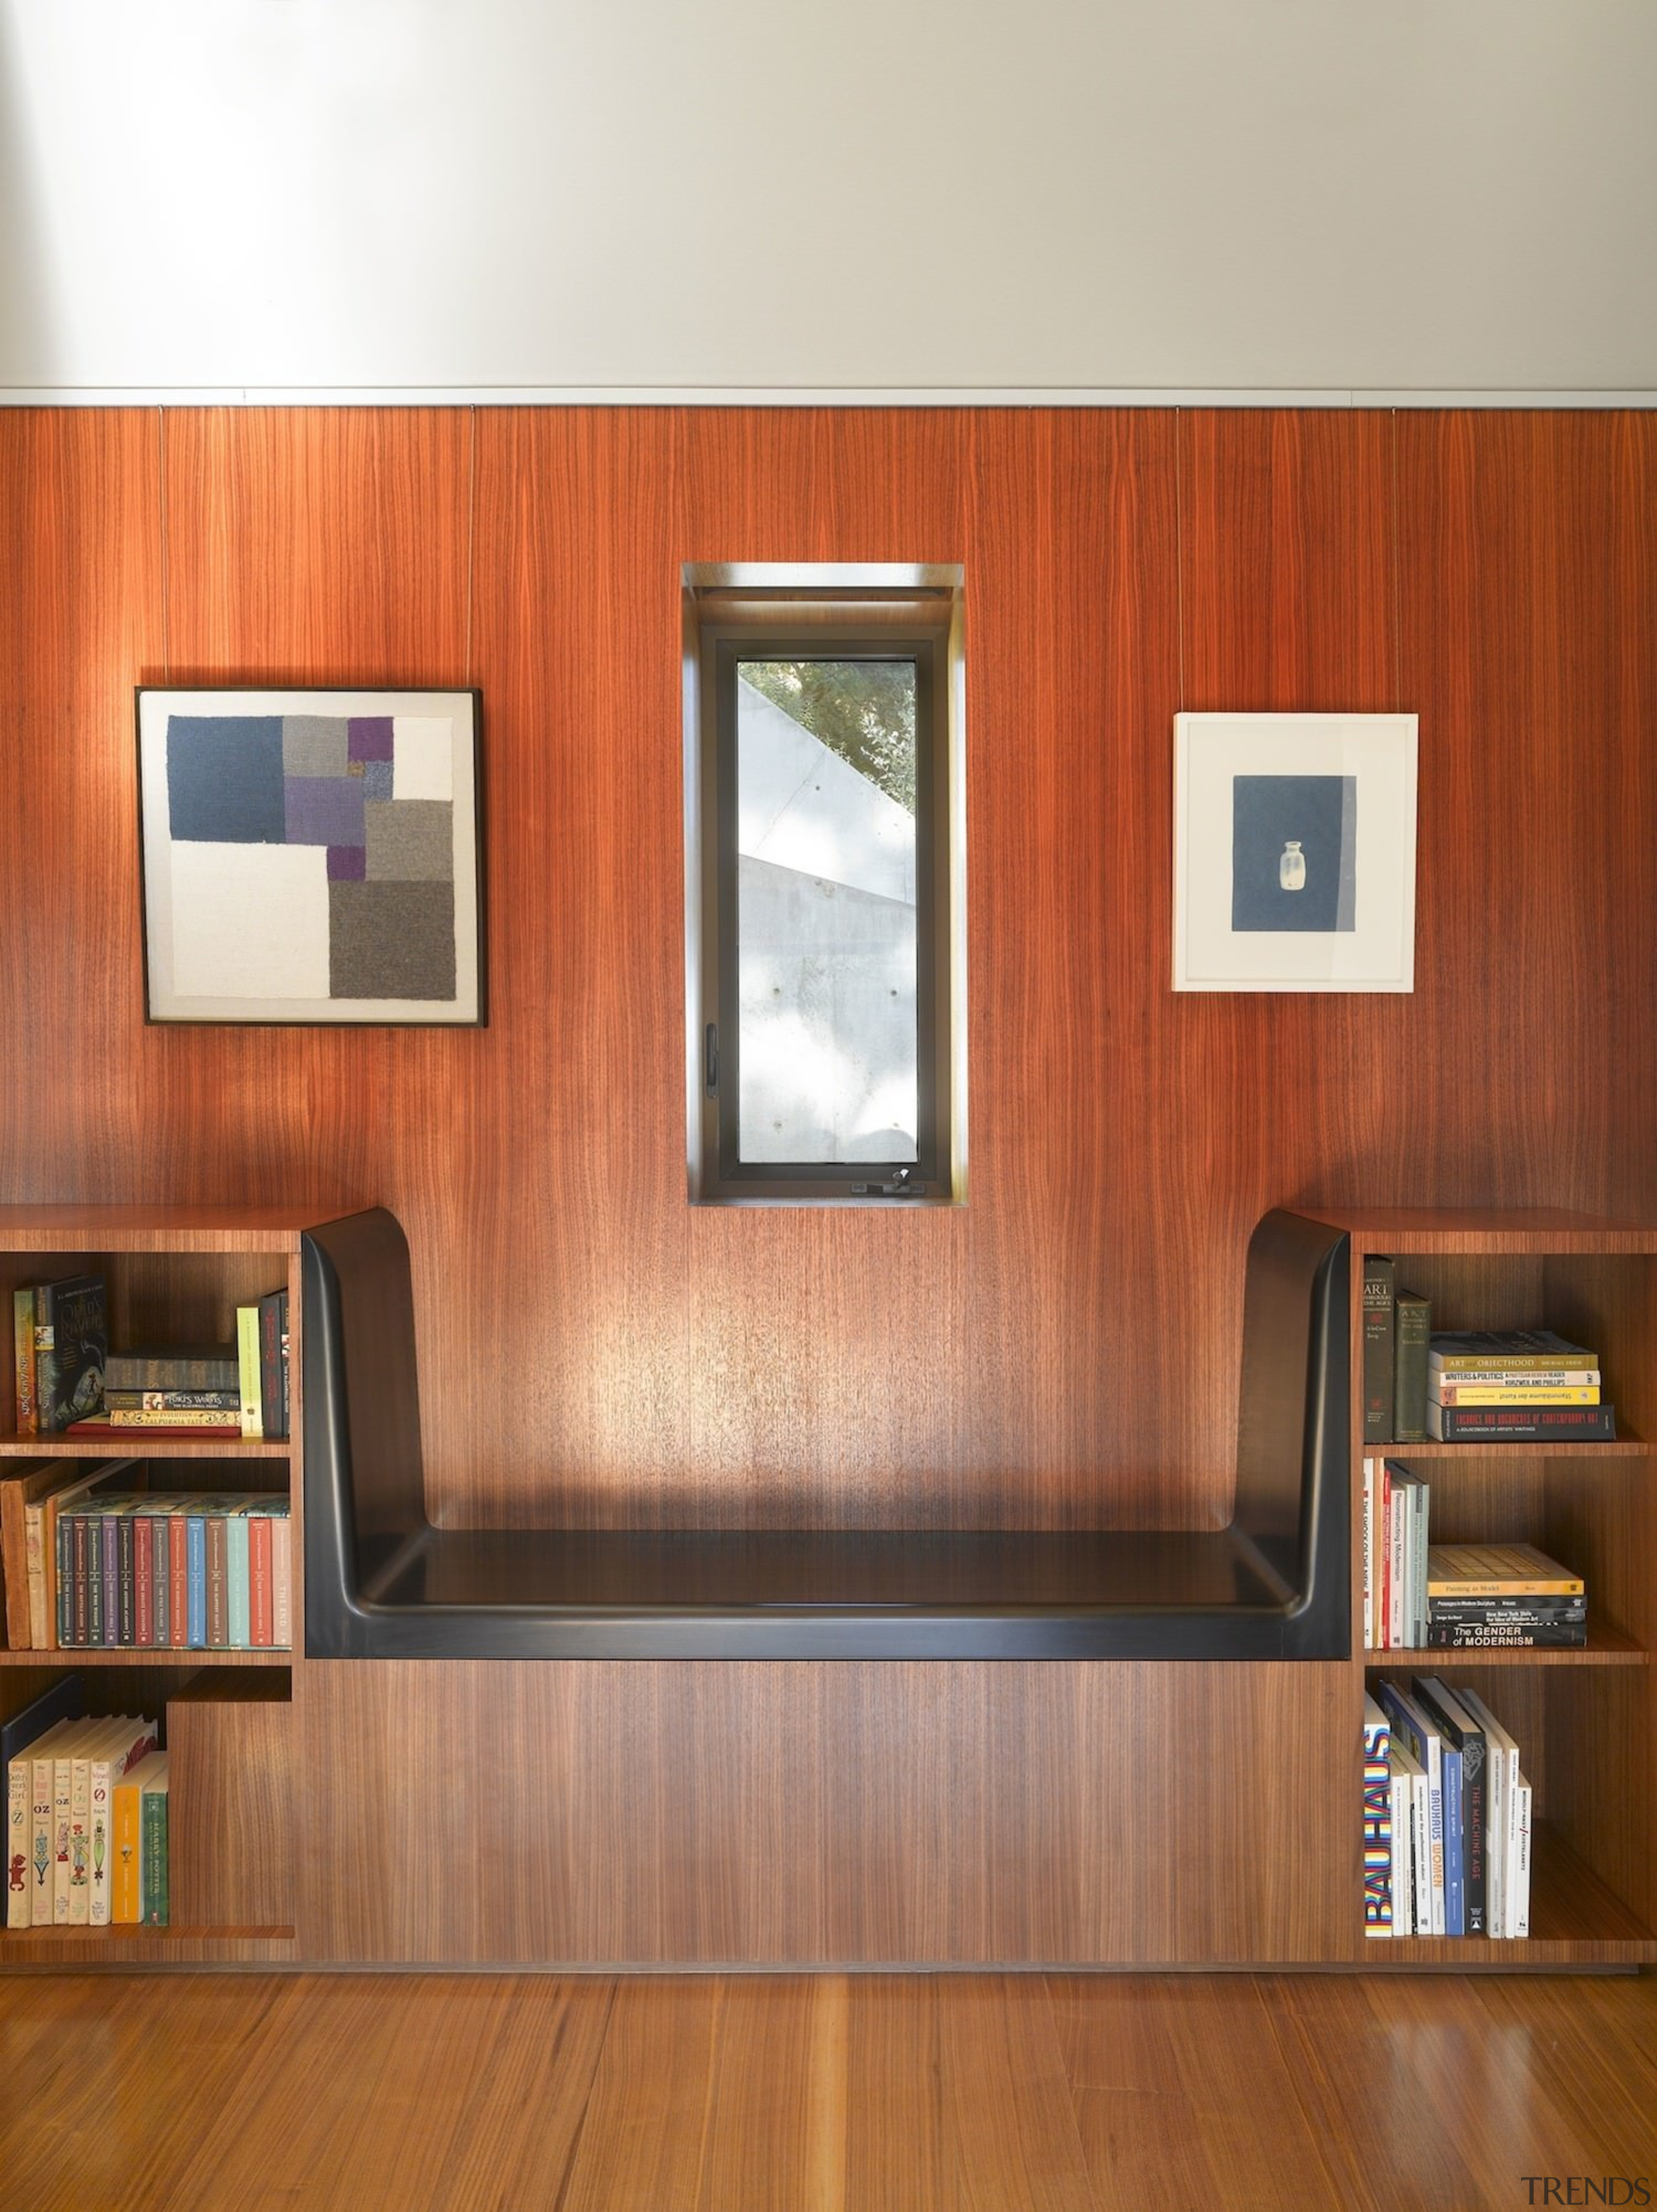 This window is perfectly framed by the seat bookcase, cabinetry, floor, flooring, furniture, hardwood, interior design, laminate flooring, shelf, shelving, wall, wood, wood flooring, wood stain, brown